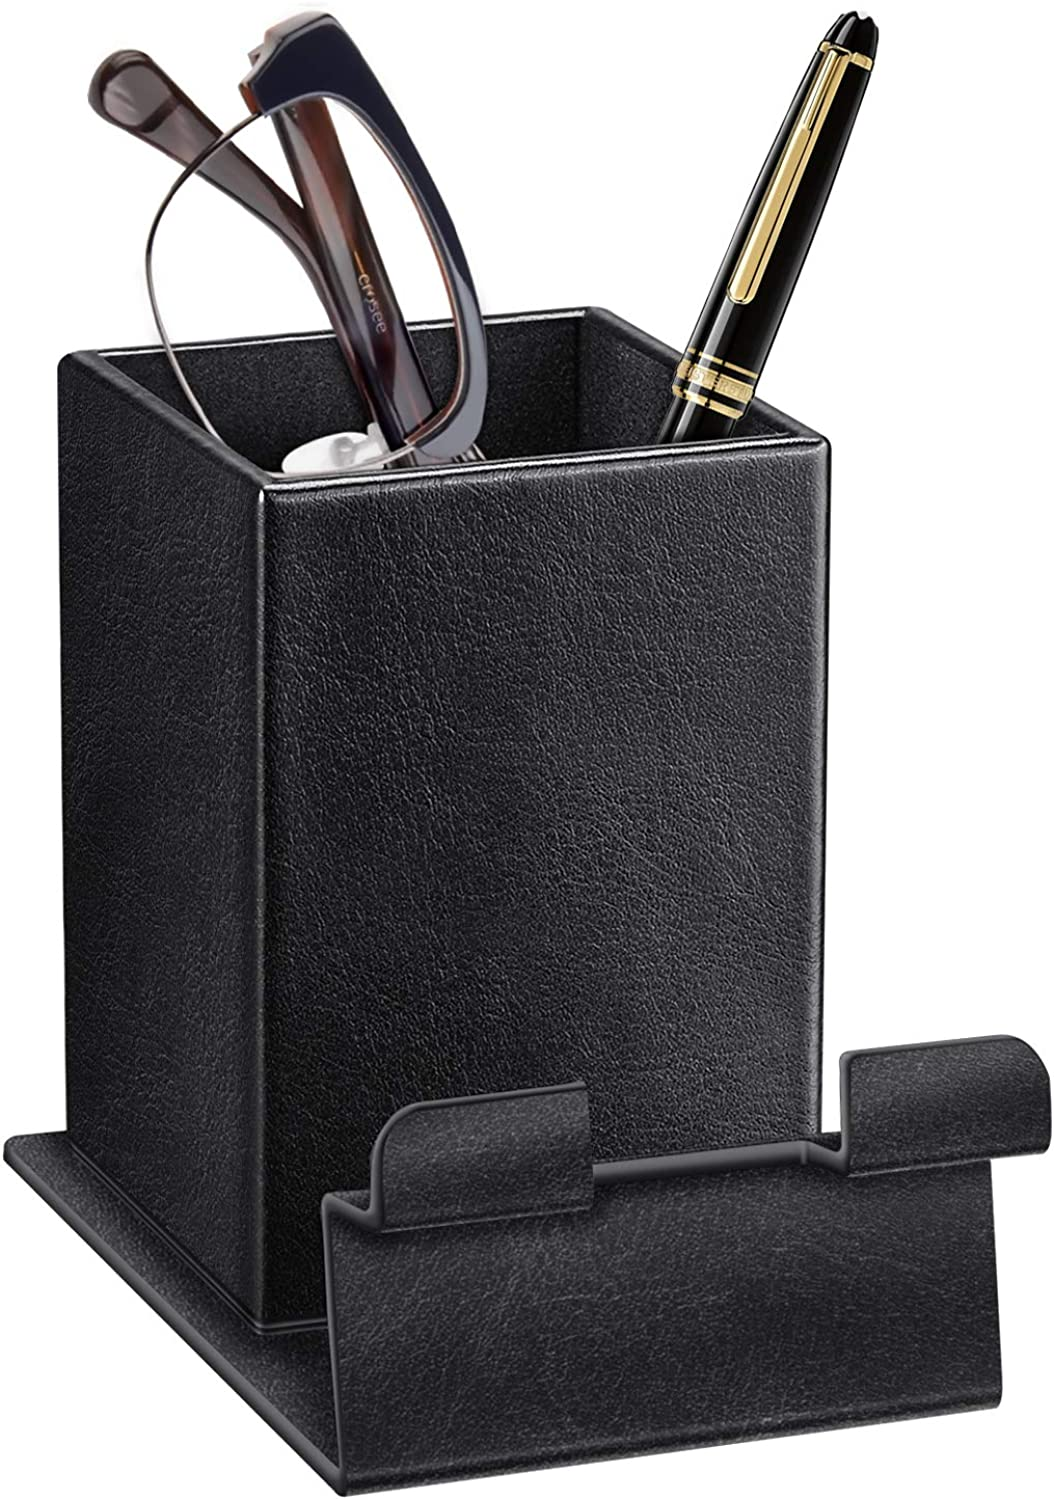 PU Leather/Glasses Stand Case Rose Gold Fintie Plush Lined Eyeglasses Holder with Magnetic Base